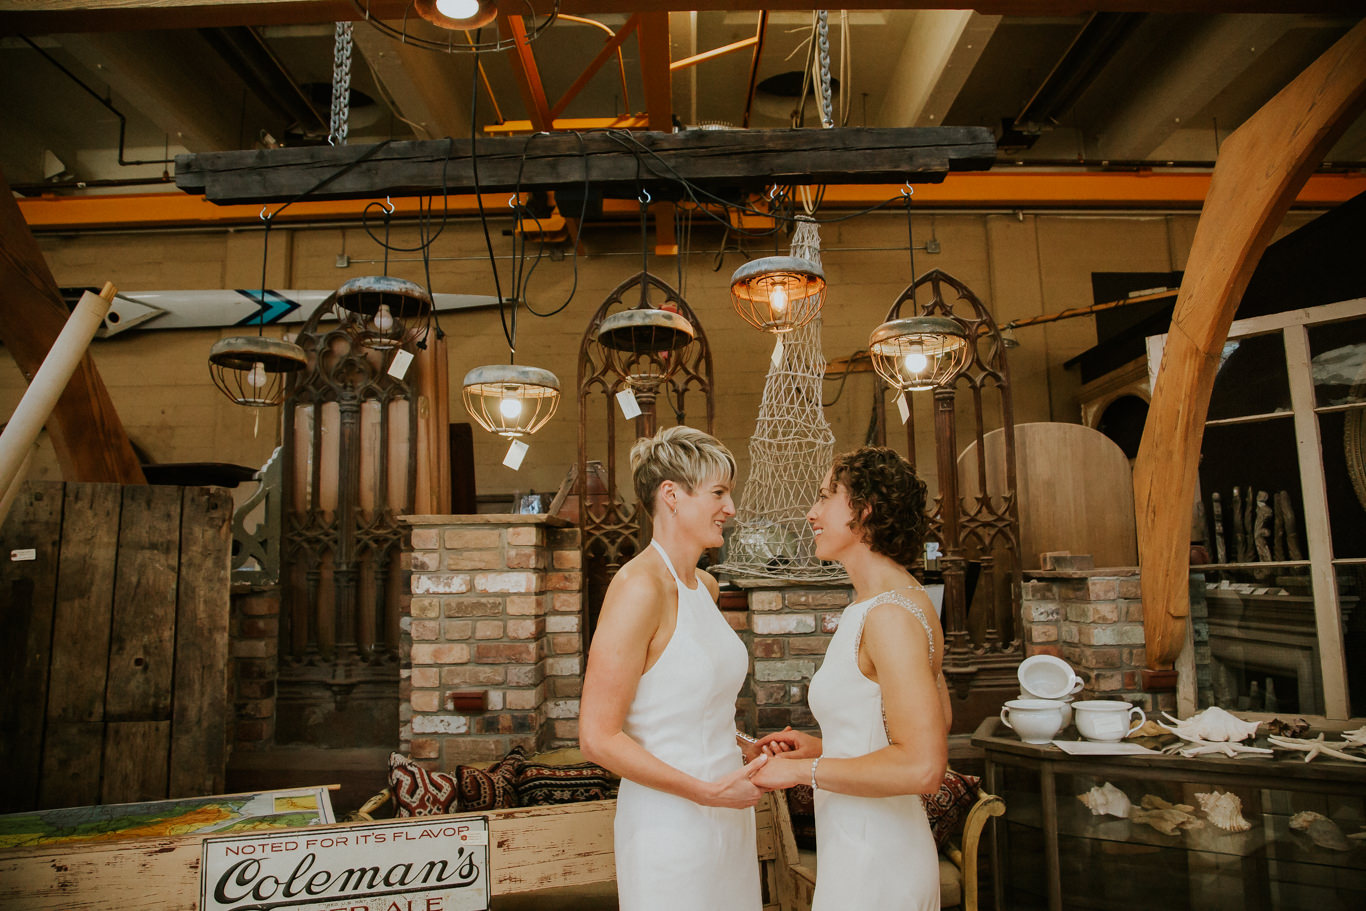 Lindsay-and-Heather-Charbar-Restaurant-Wedding-in-Calgary-44